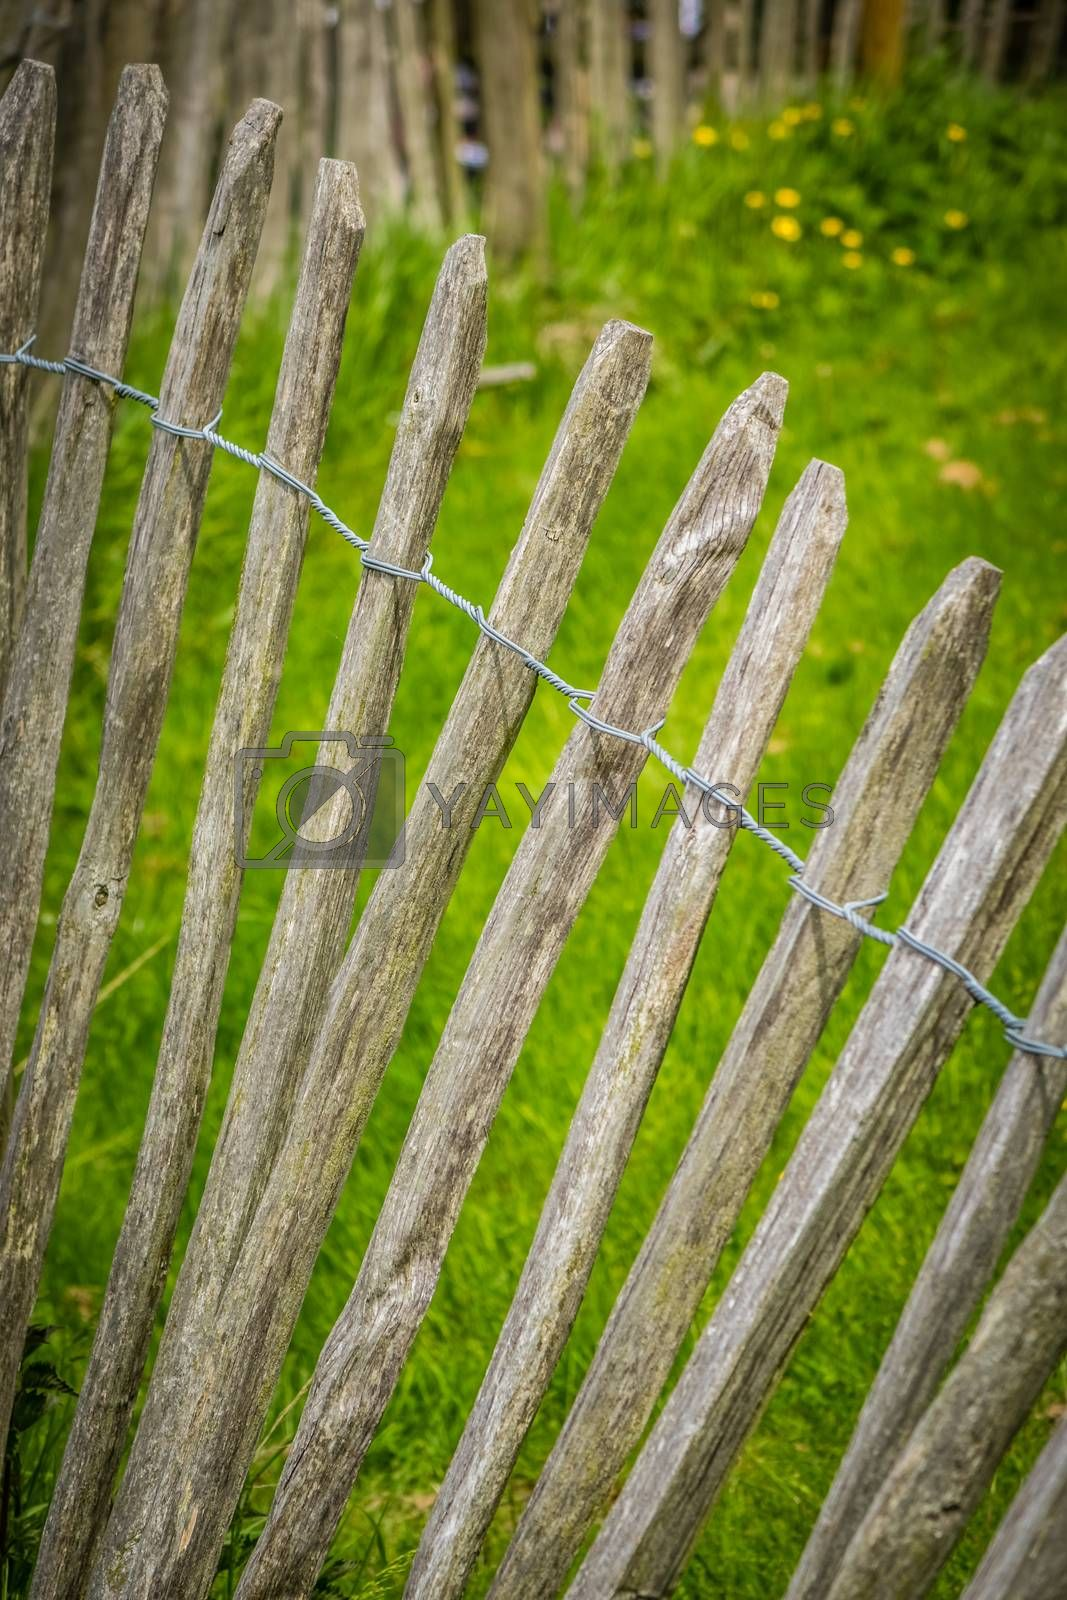 Close up of an old wooden fence